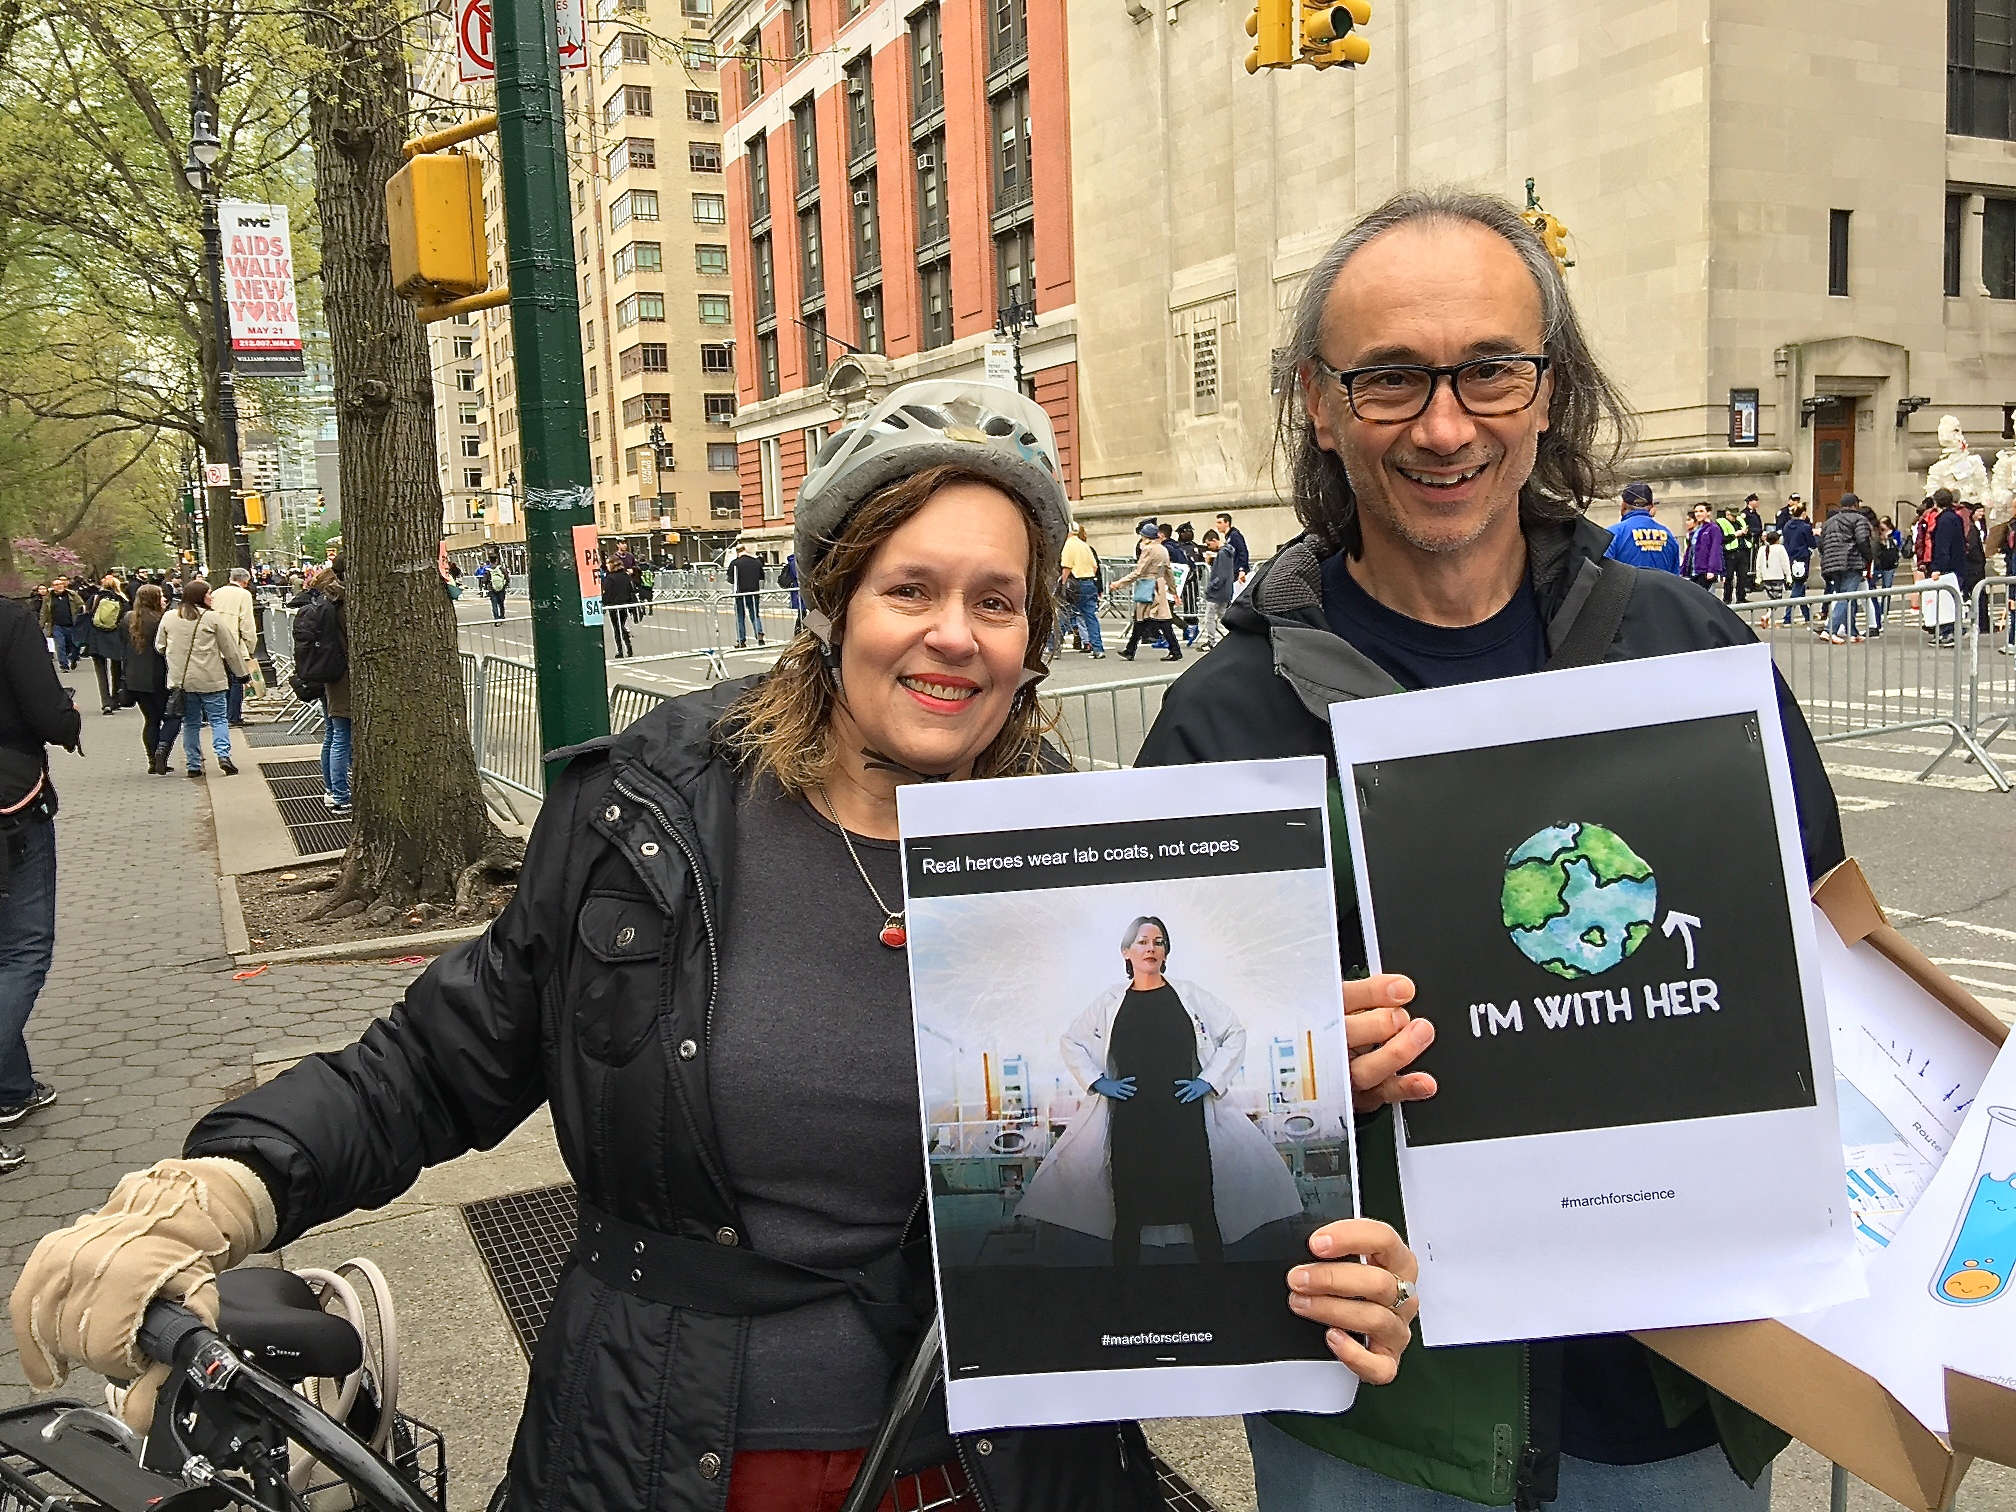 Lorraine Gudas & John Blenis at the March for Science